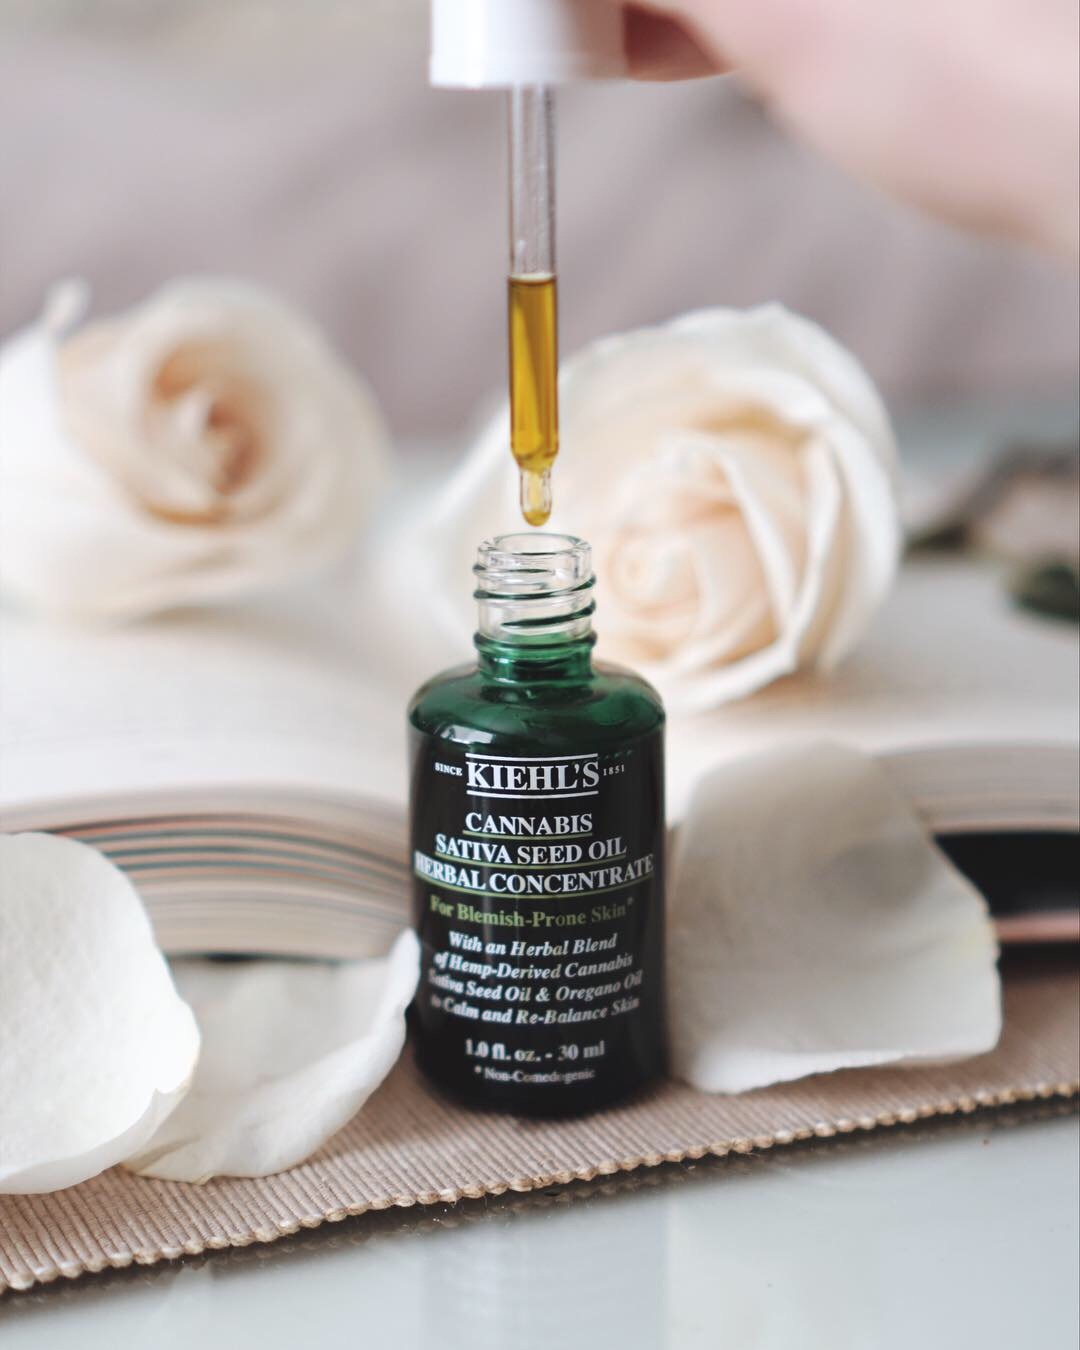 Kiehls-cannabis+sativa-seed-oil+herbal-concentrate-+skincare-review.jpg